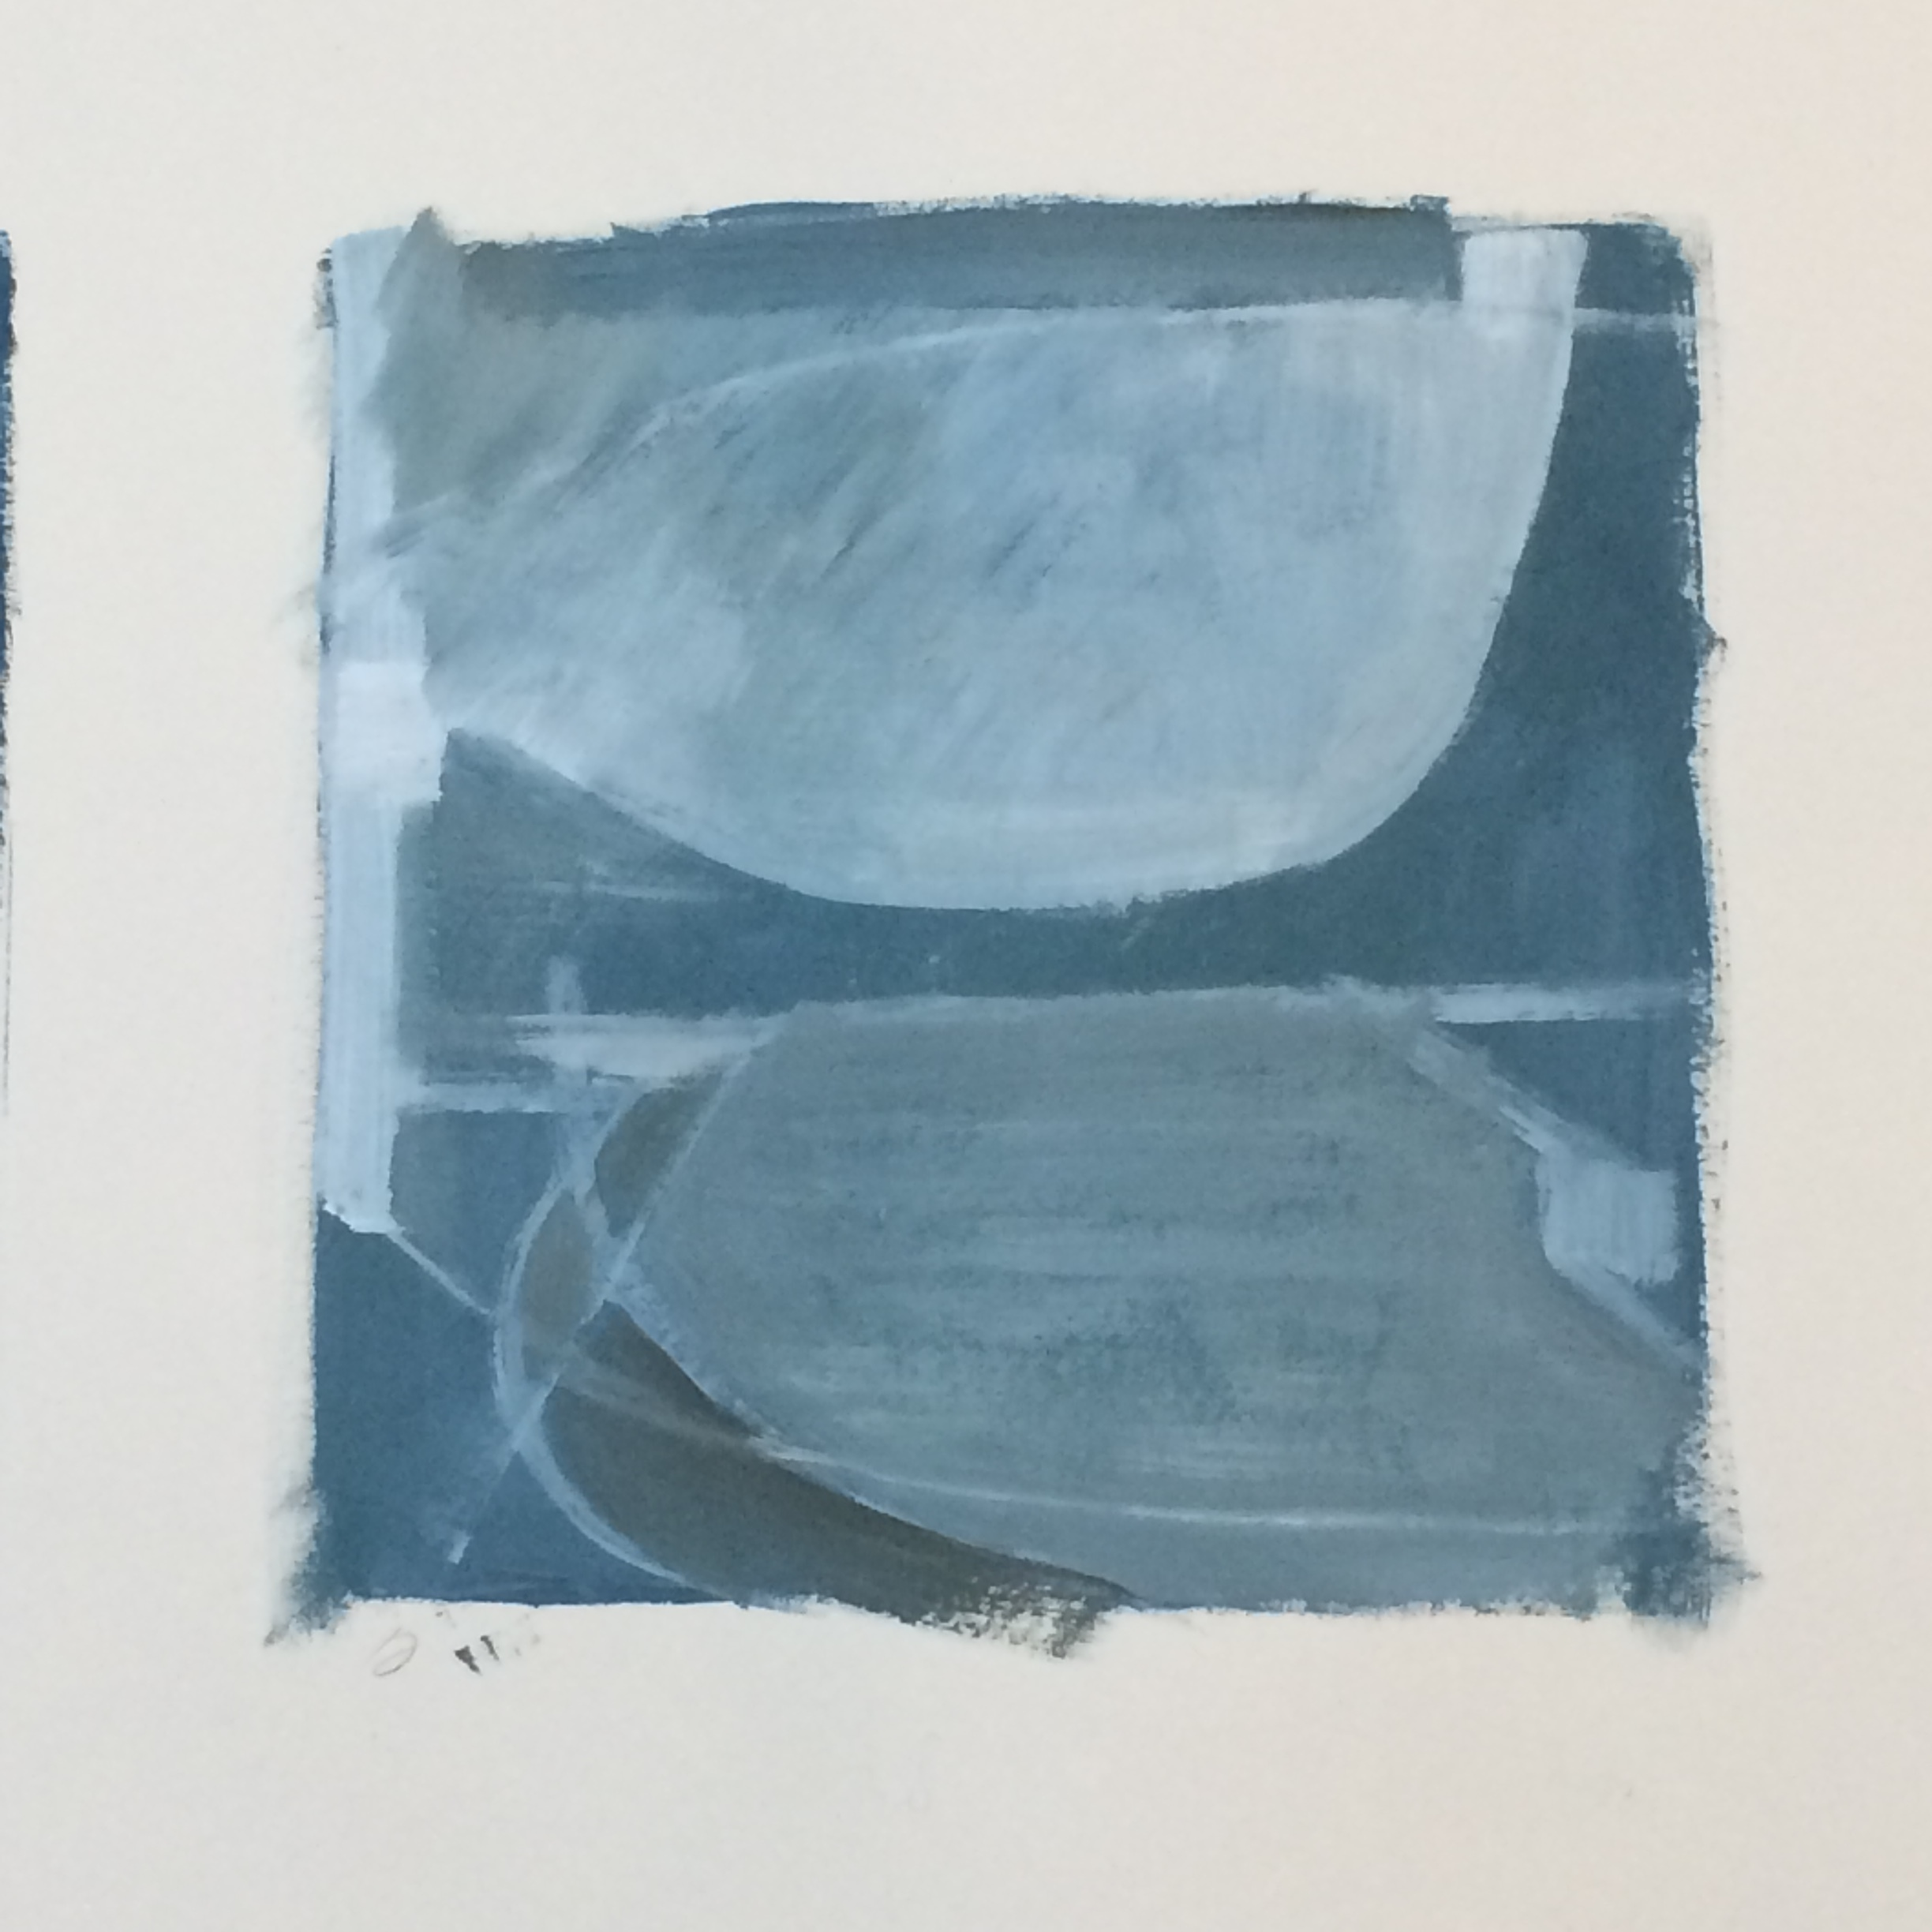 Latest series - Working on the Marine lake series looking at the structure, air and light as a source of frustration! Using a roll of lining paper and letting one idea jump into another is very exciting and will no doubt spark even more investigations.